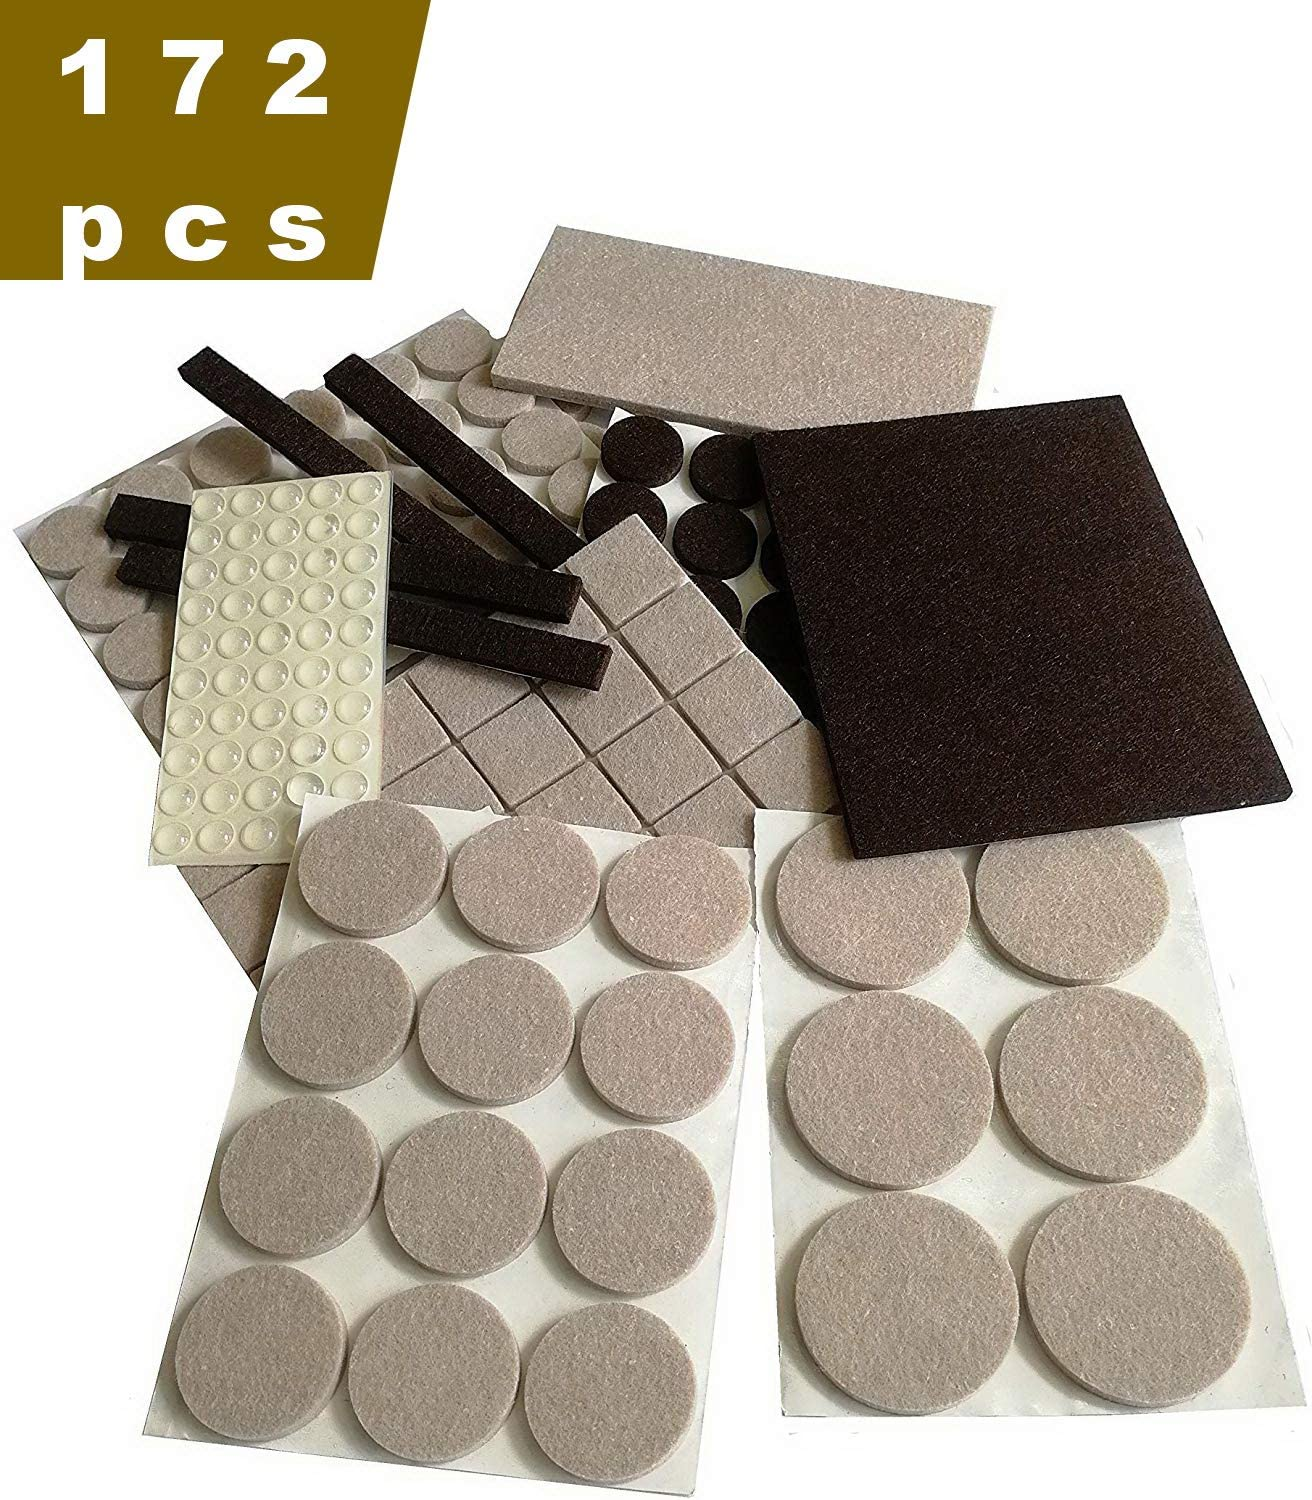 Felt Table and Chair Pads, Self-Adhesive Floor Protection Mats, Furniture Rubber Sofa Anti-Skid Pads, Floor Mute Wear Pads. A Total of 172 Senior Protective Pad, Two Colors: Brown and Beige.